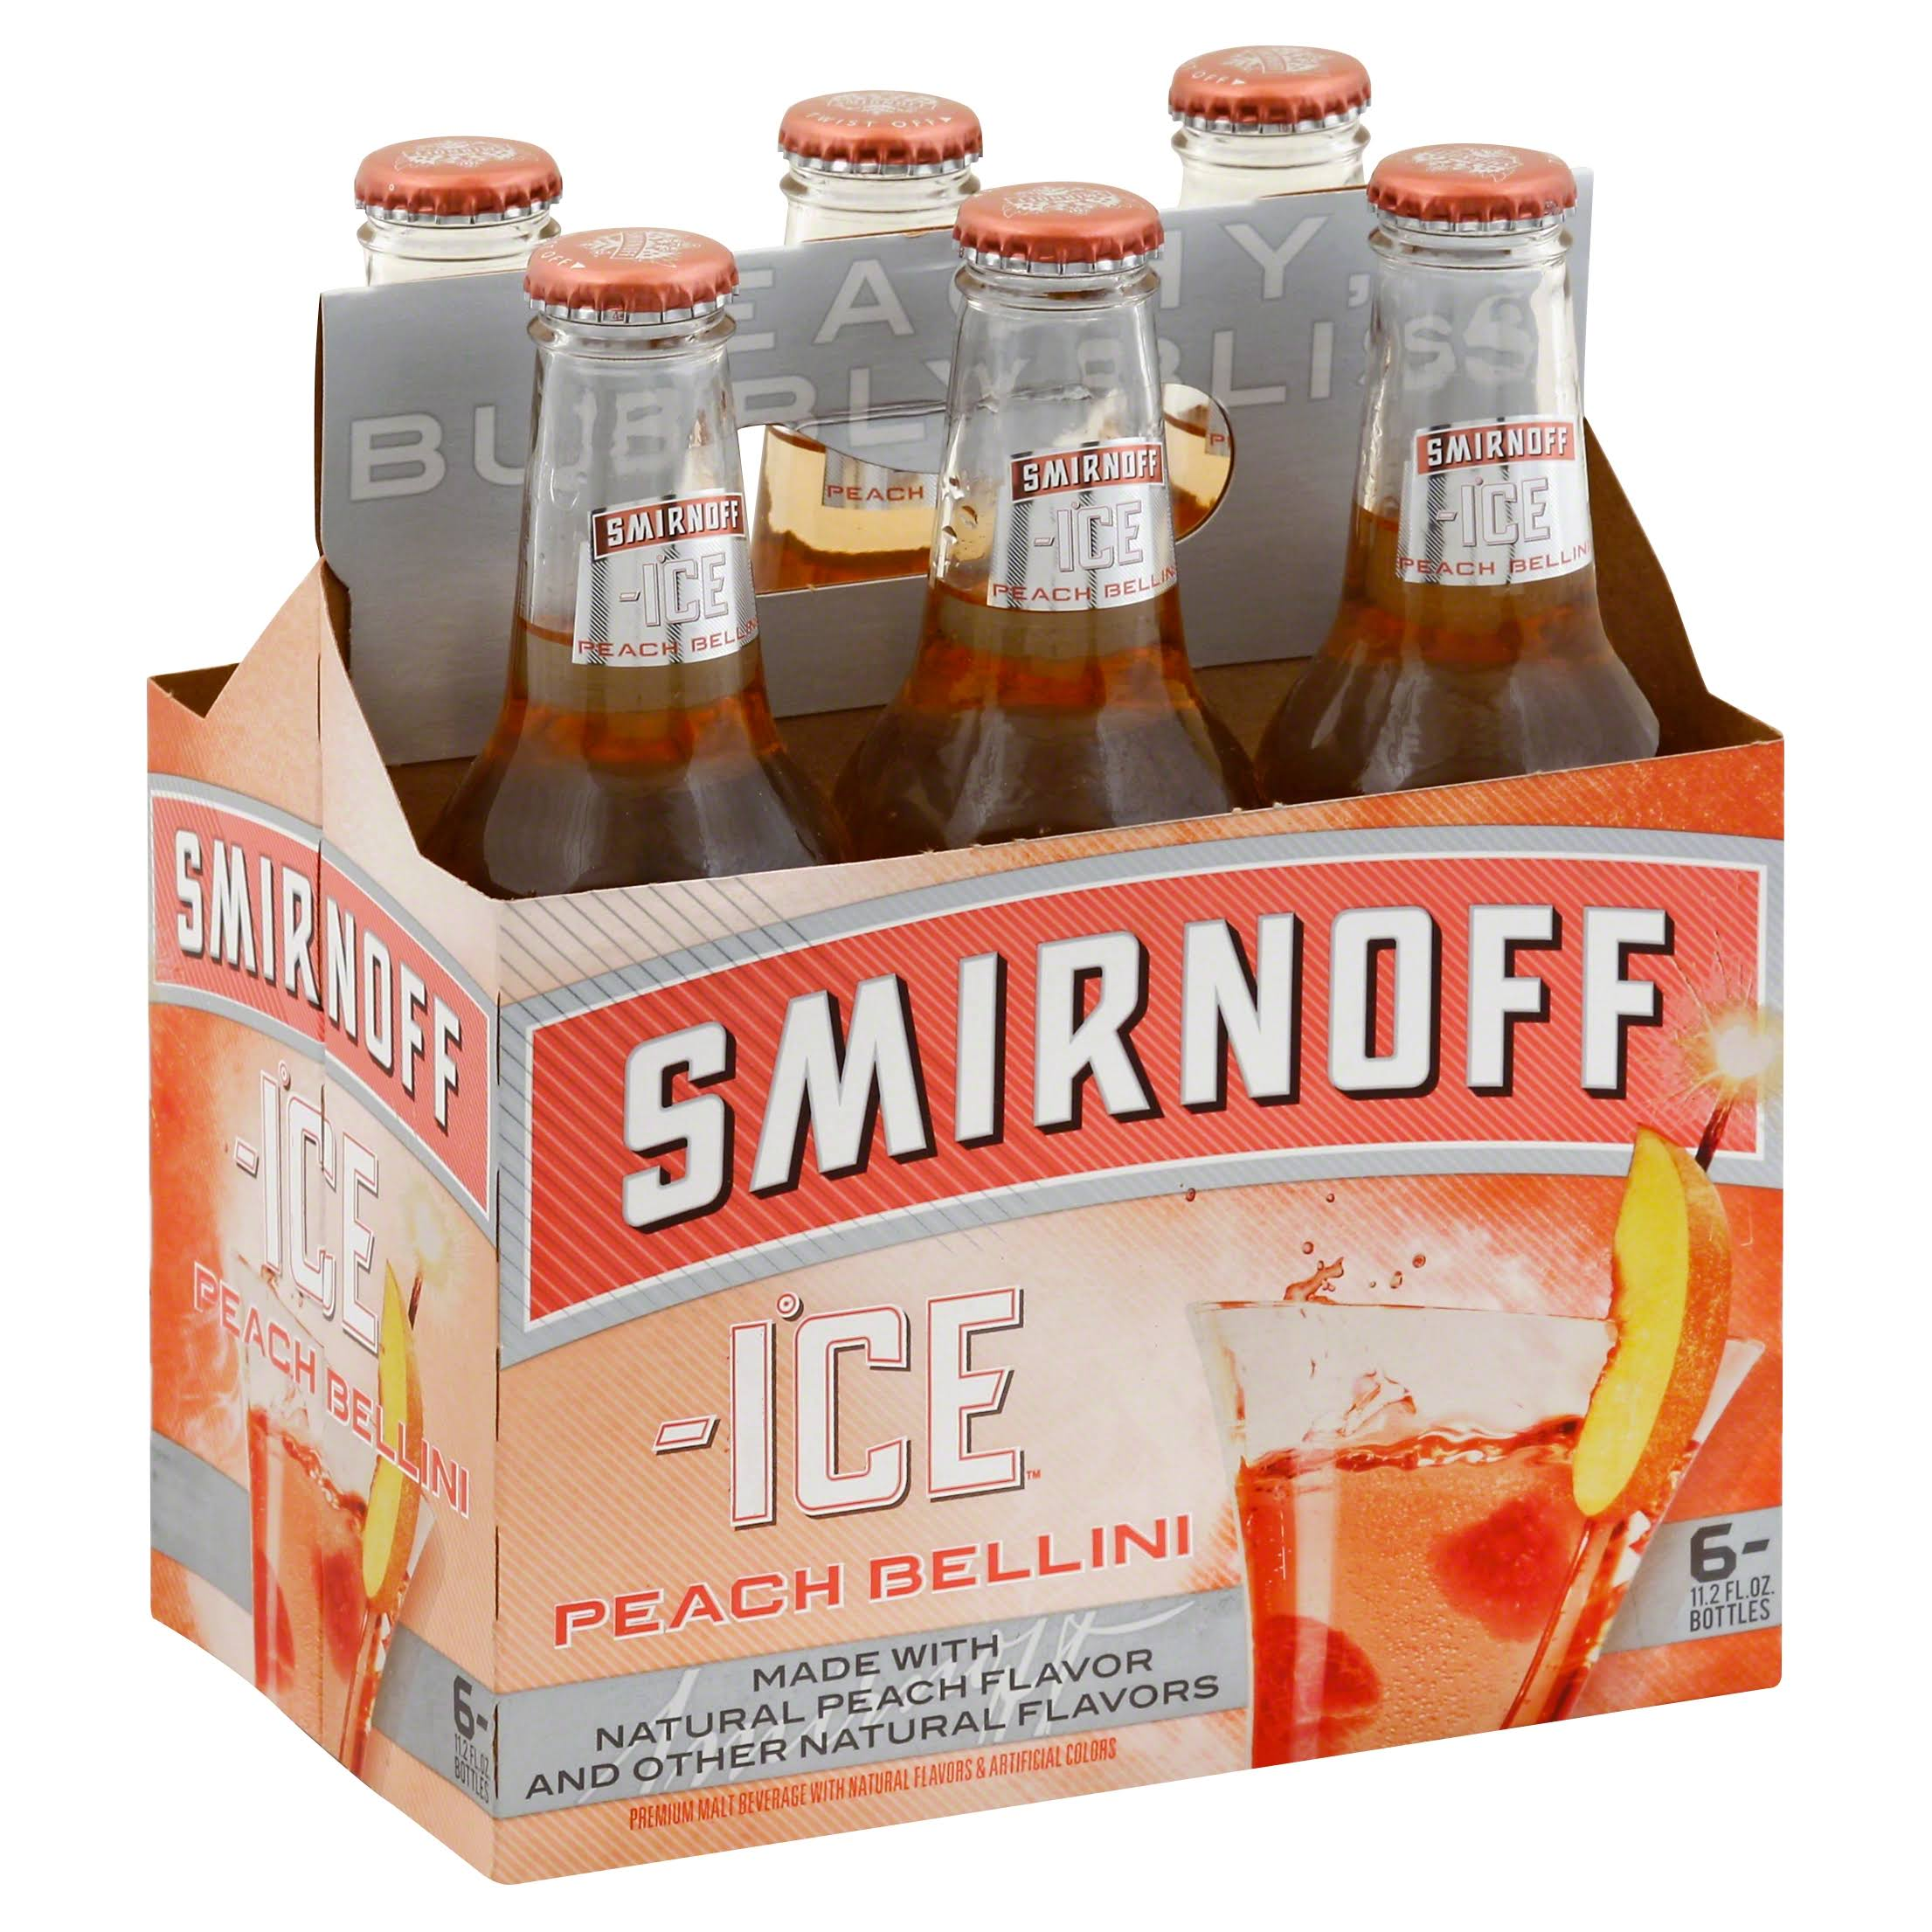 Smirnoff Ice Malt Beverage, Premium, Peach Bellini - 6 pack, 11.2 fl oz bottles